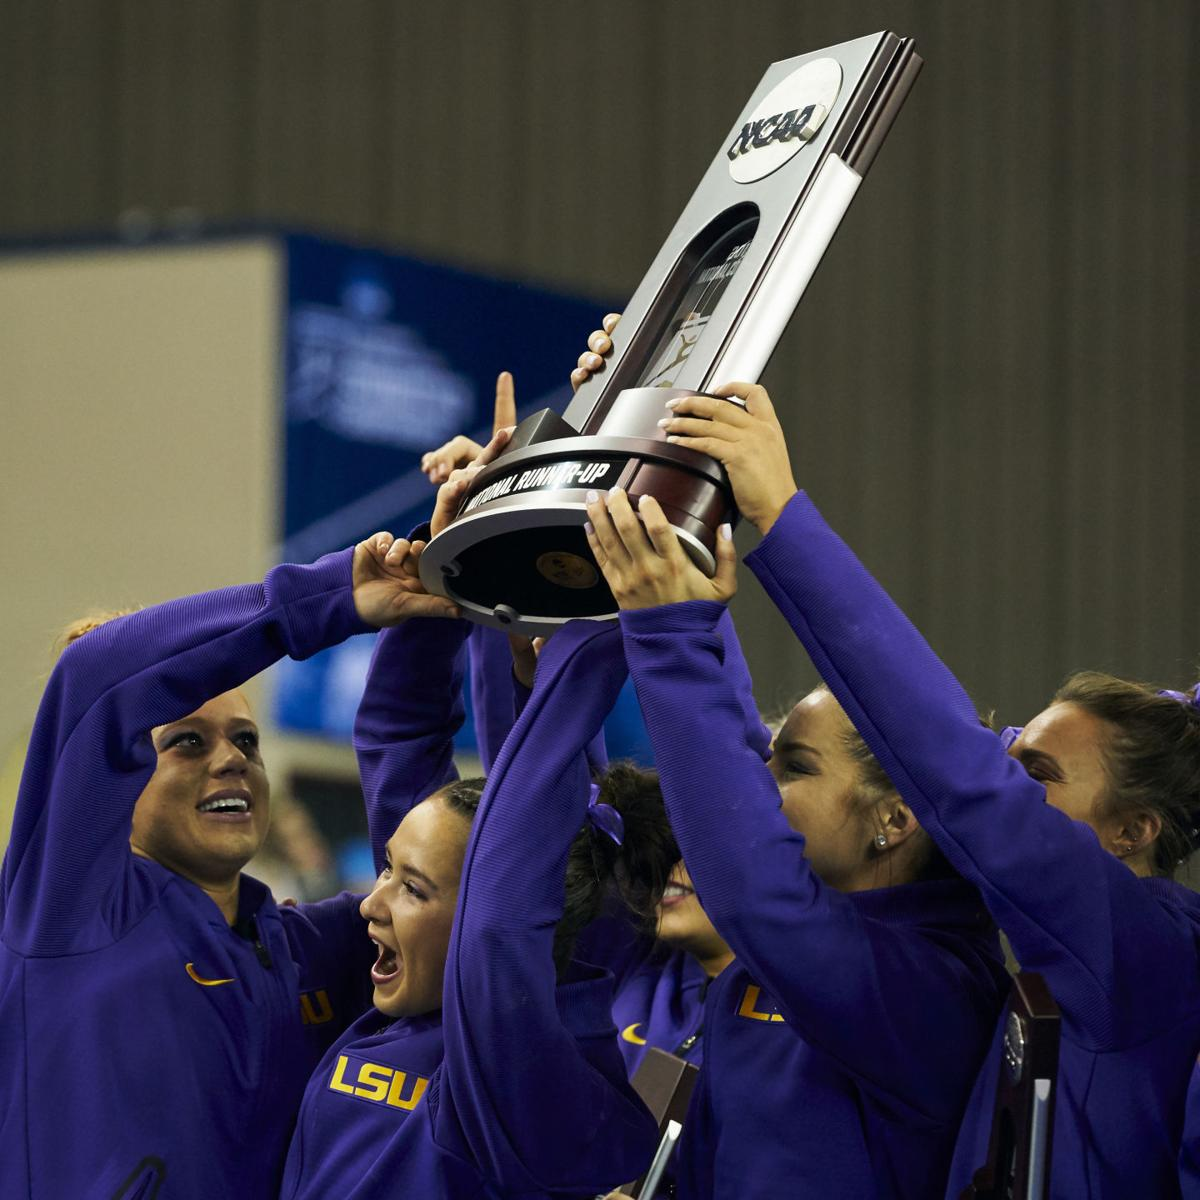 LSU senior gymnasts have 'nothing to regret' as careers conclude